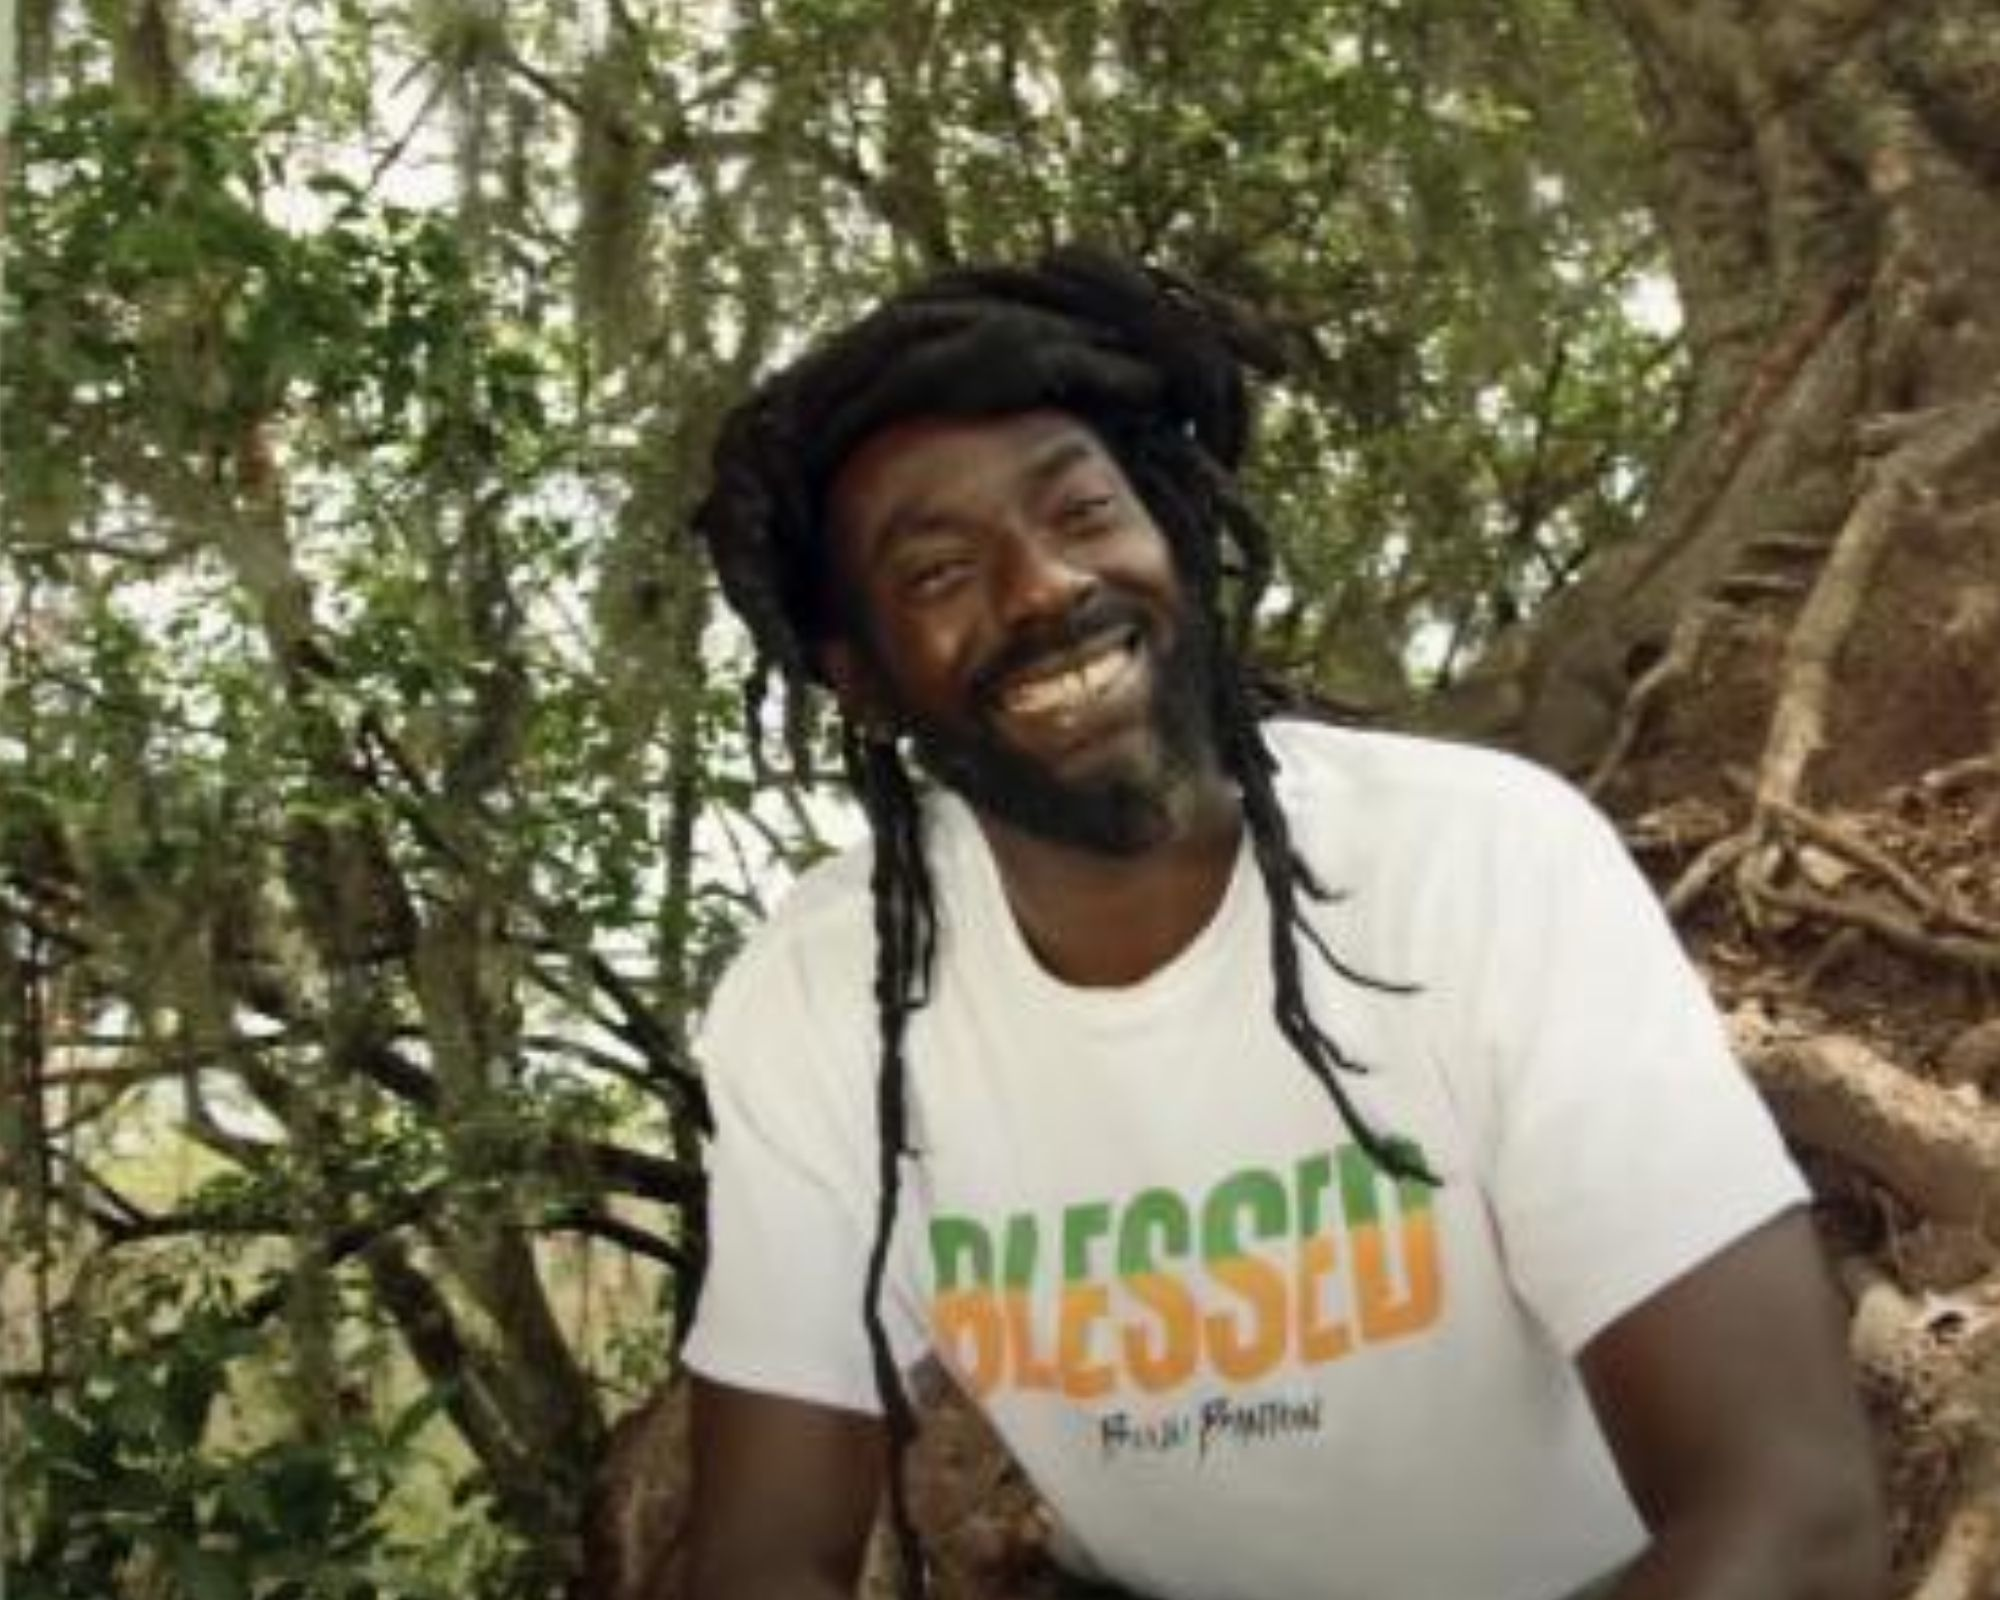 Buju Banton wins Jamaica Festival Song competition 2020